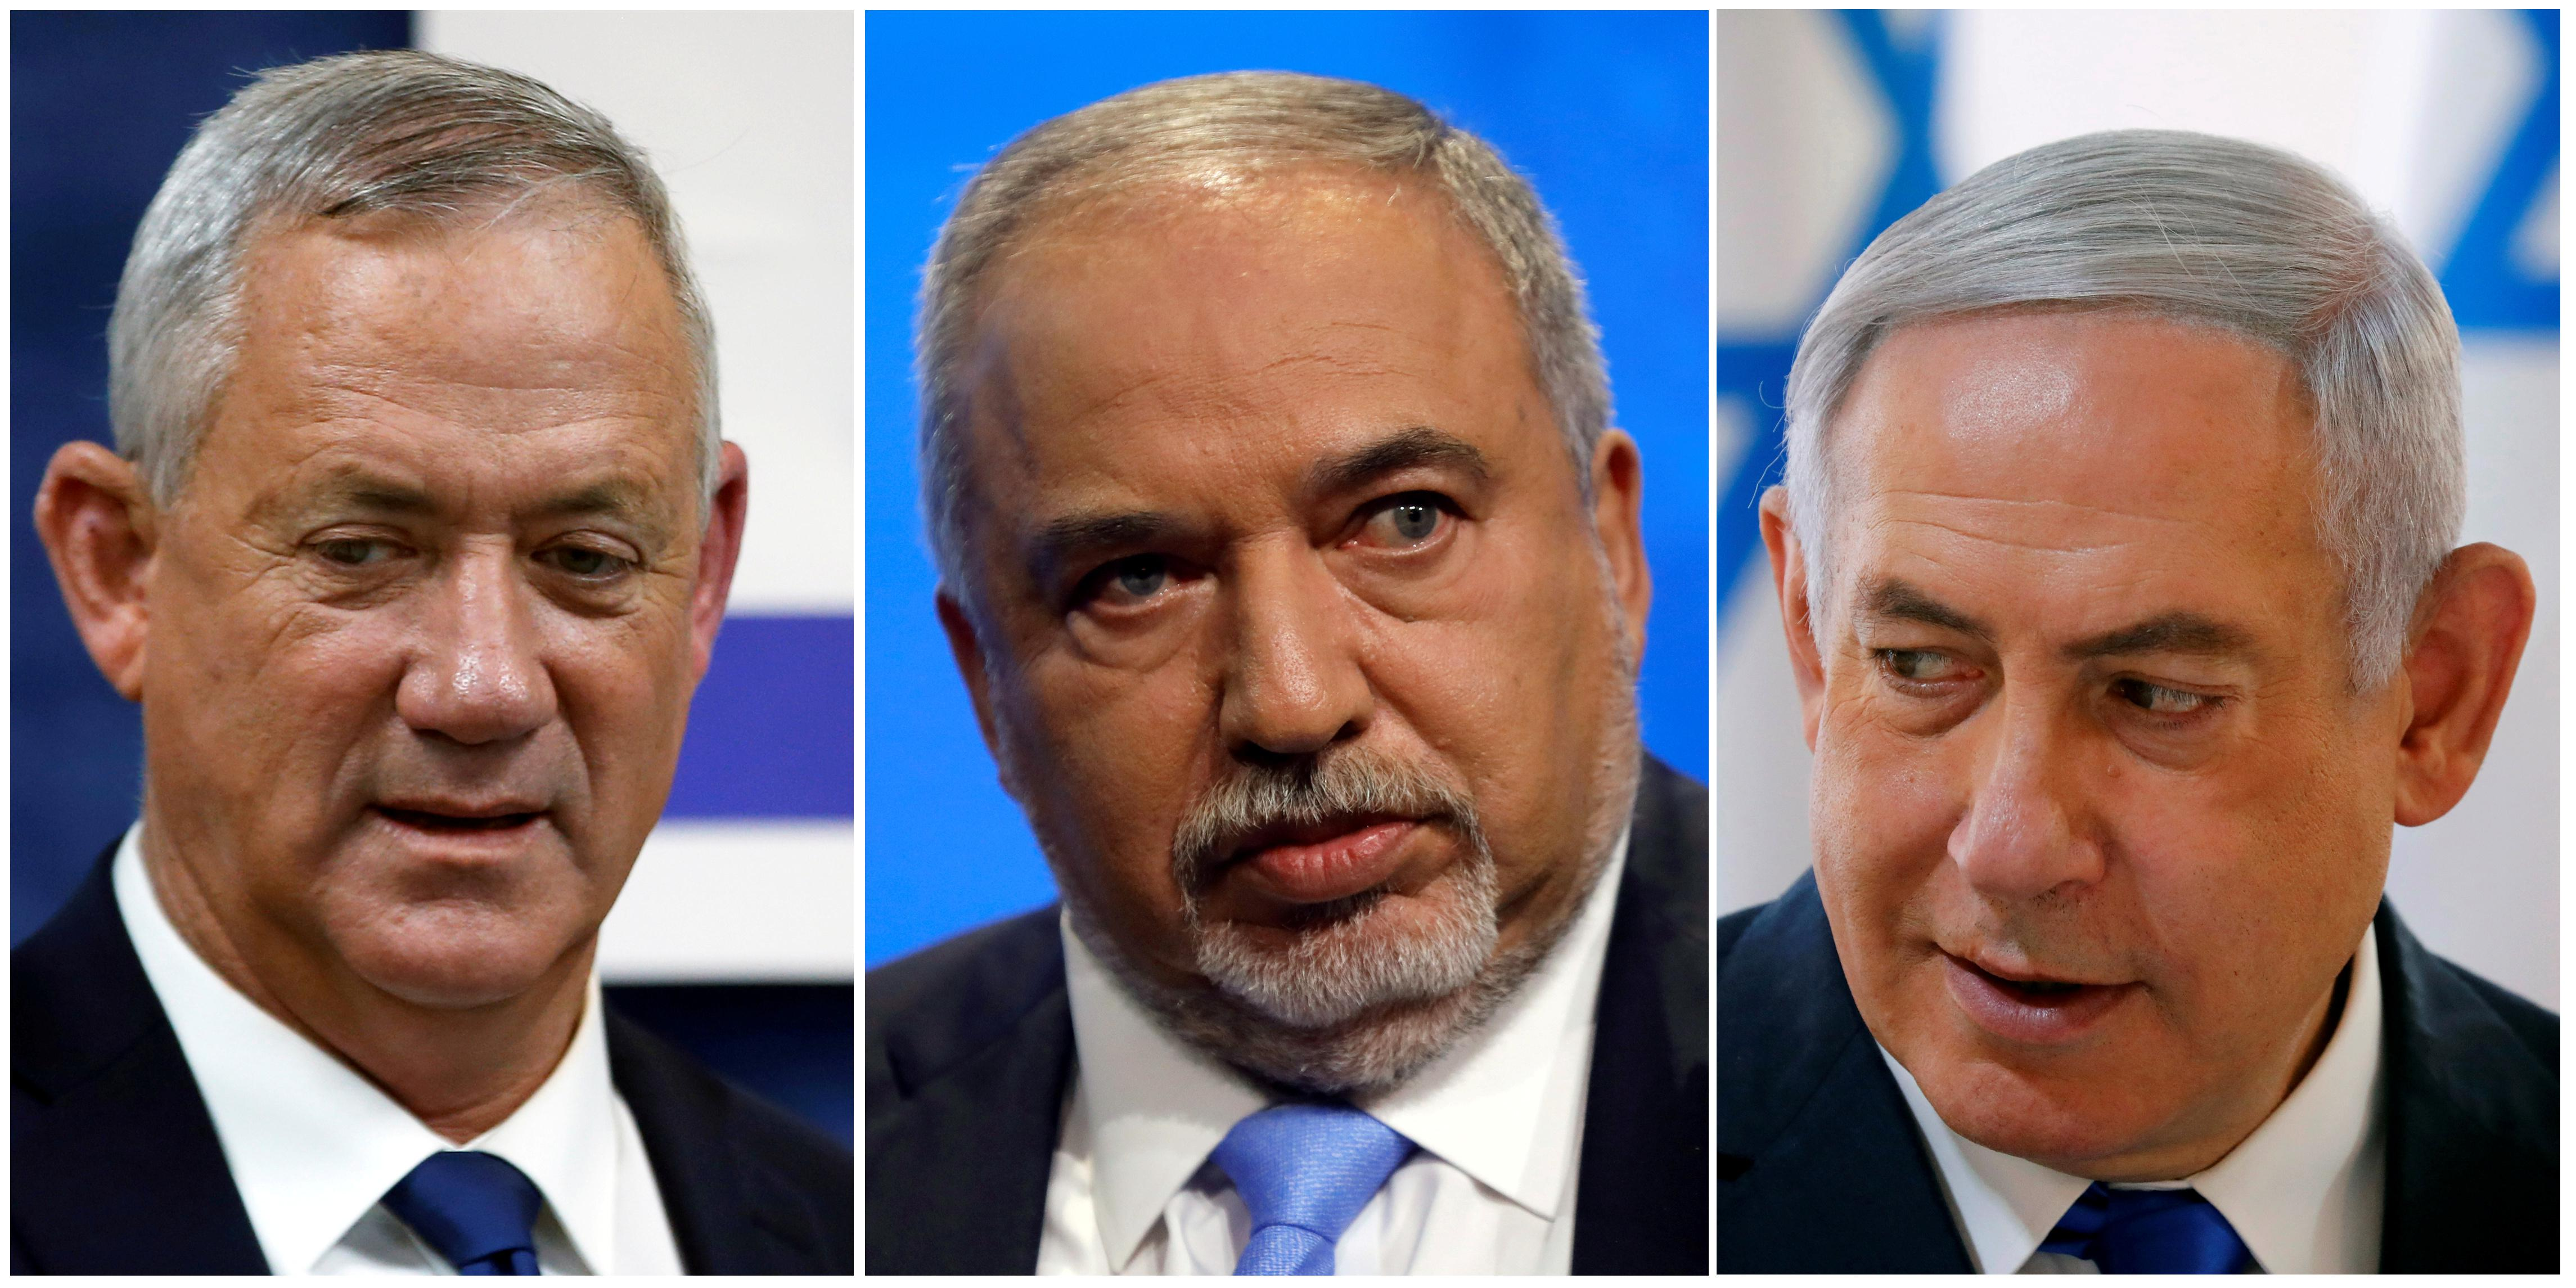 Israeli election too close to call, Netanyahu weakened: exit polls